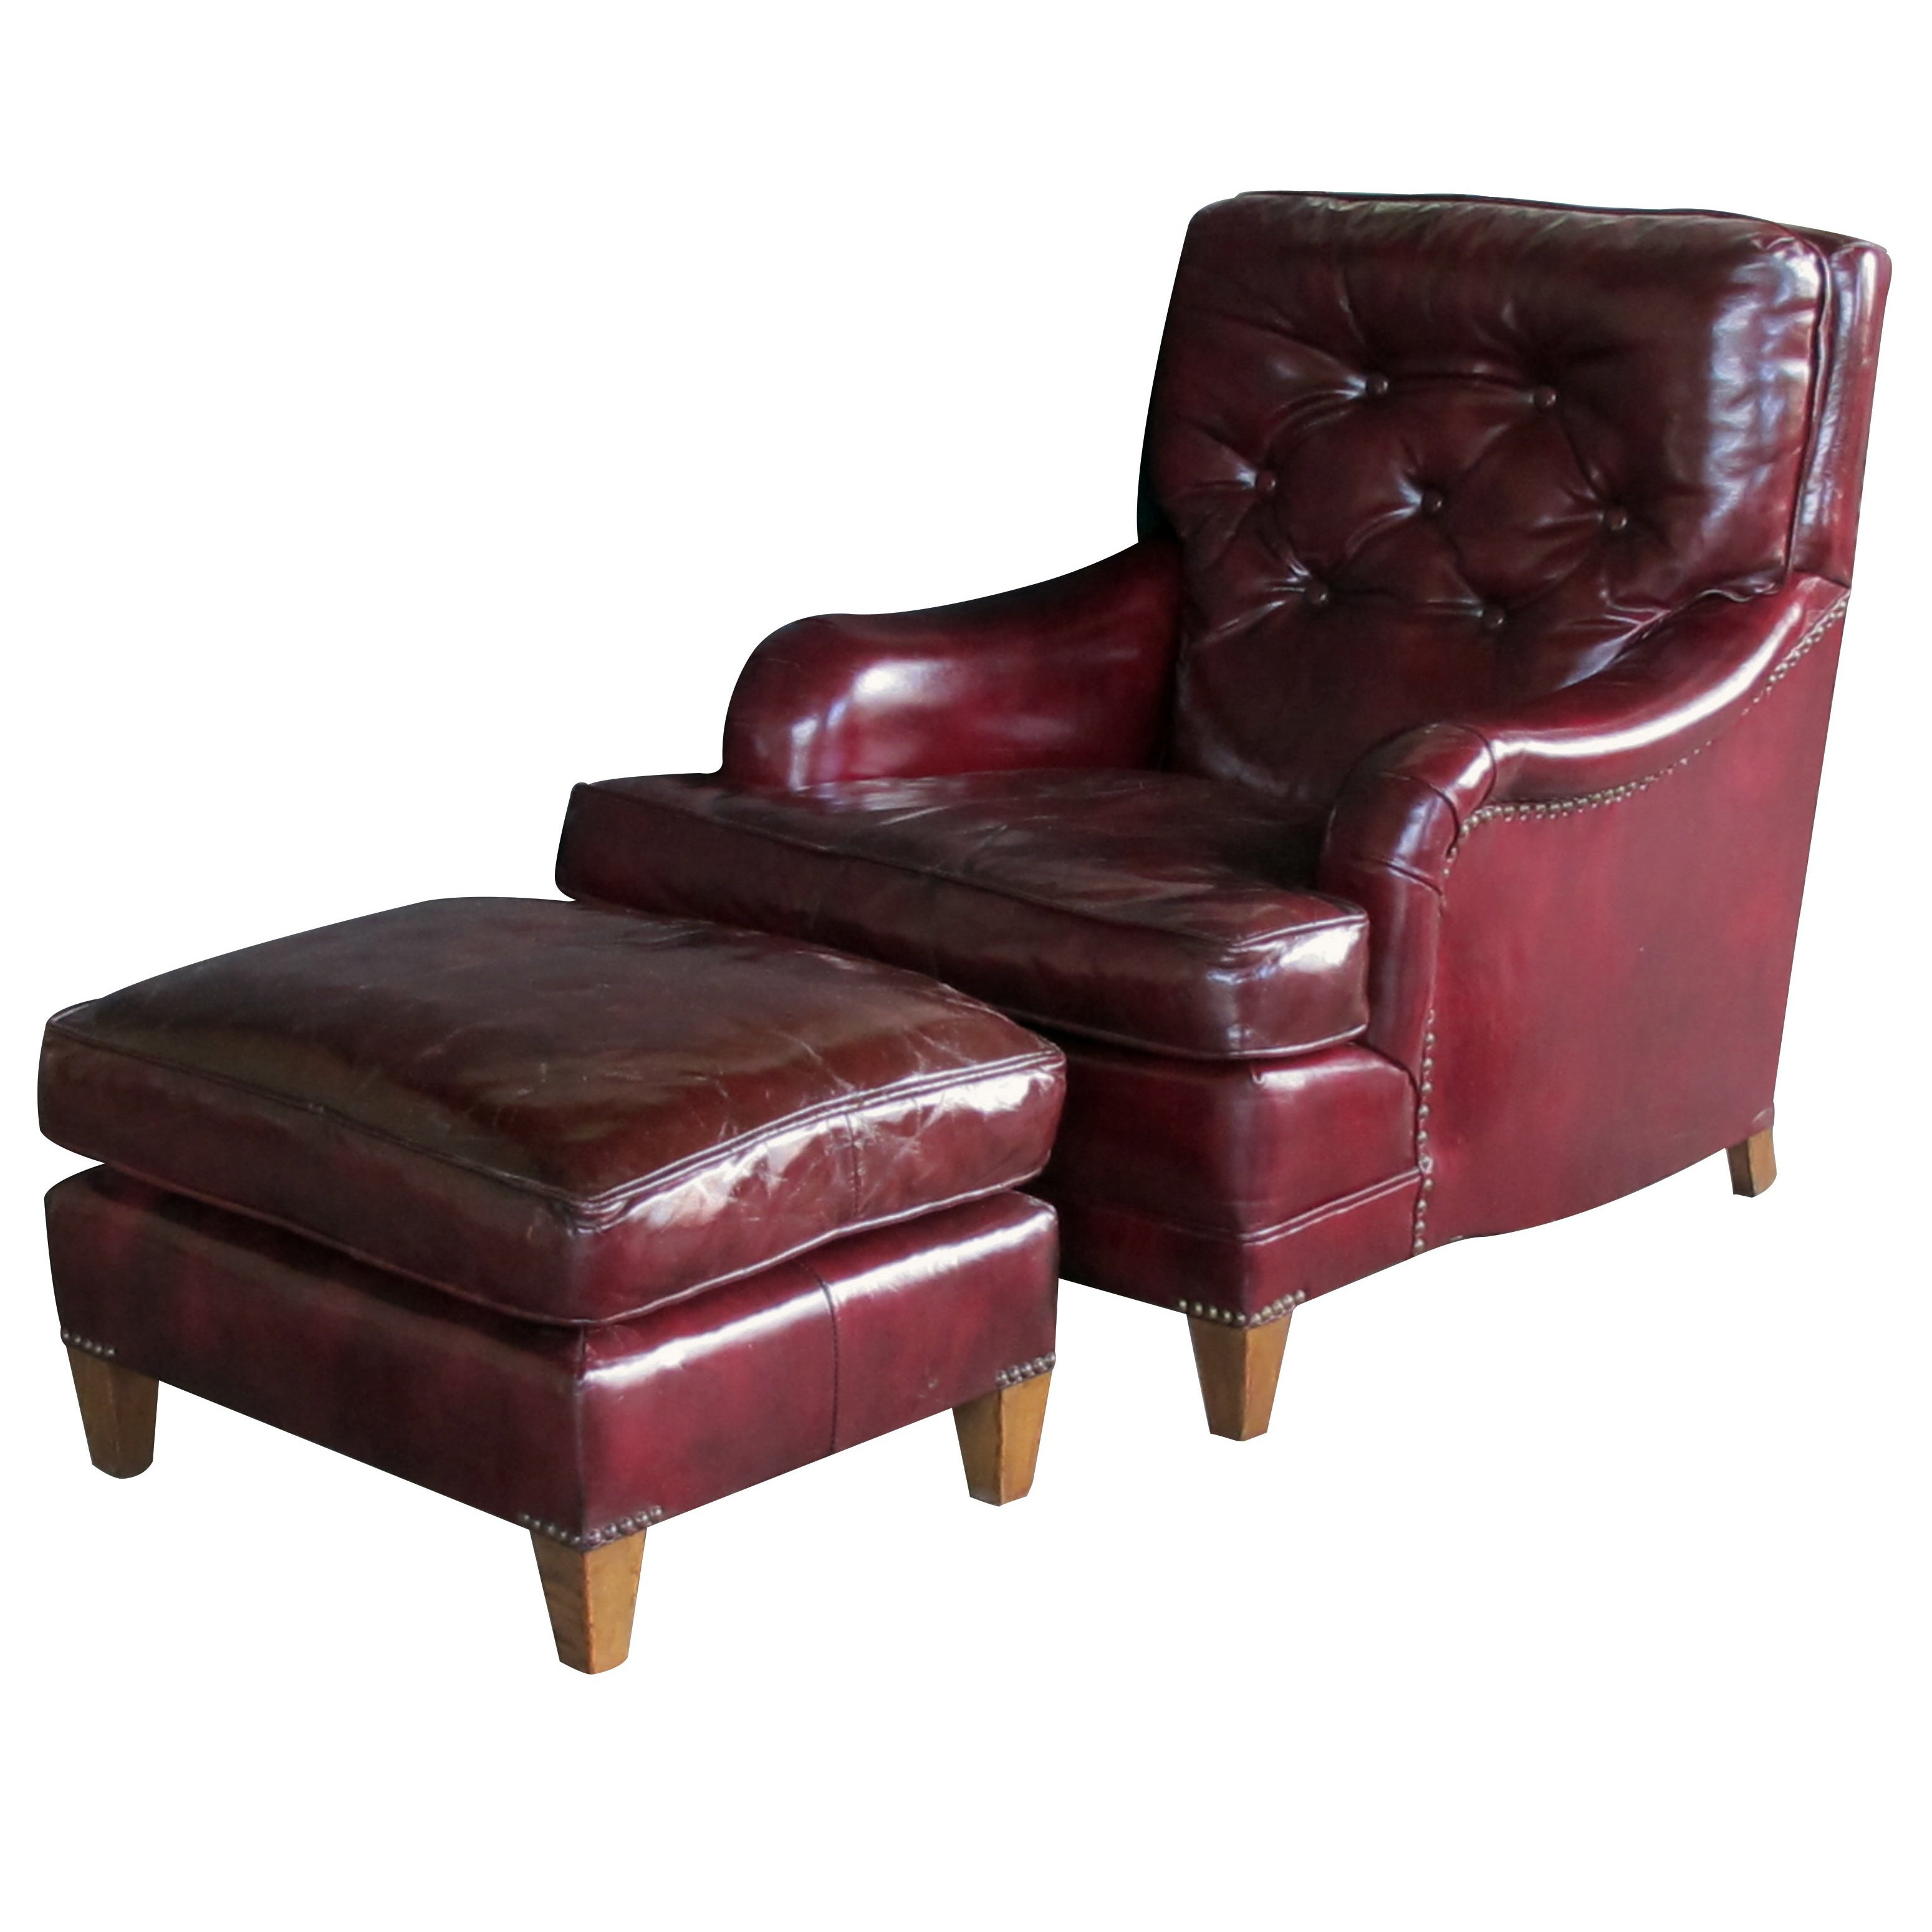 Superb Handsome American Chesterfield Club Chair And Ottoman At 1Stdibs Alphanode Cool Chair Designs And Ideas Alphanodeonline